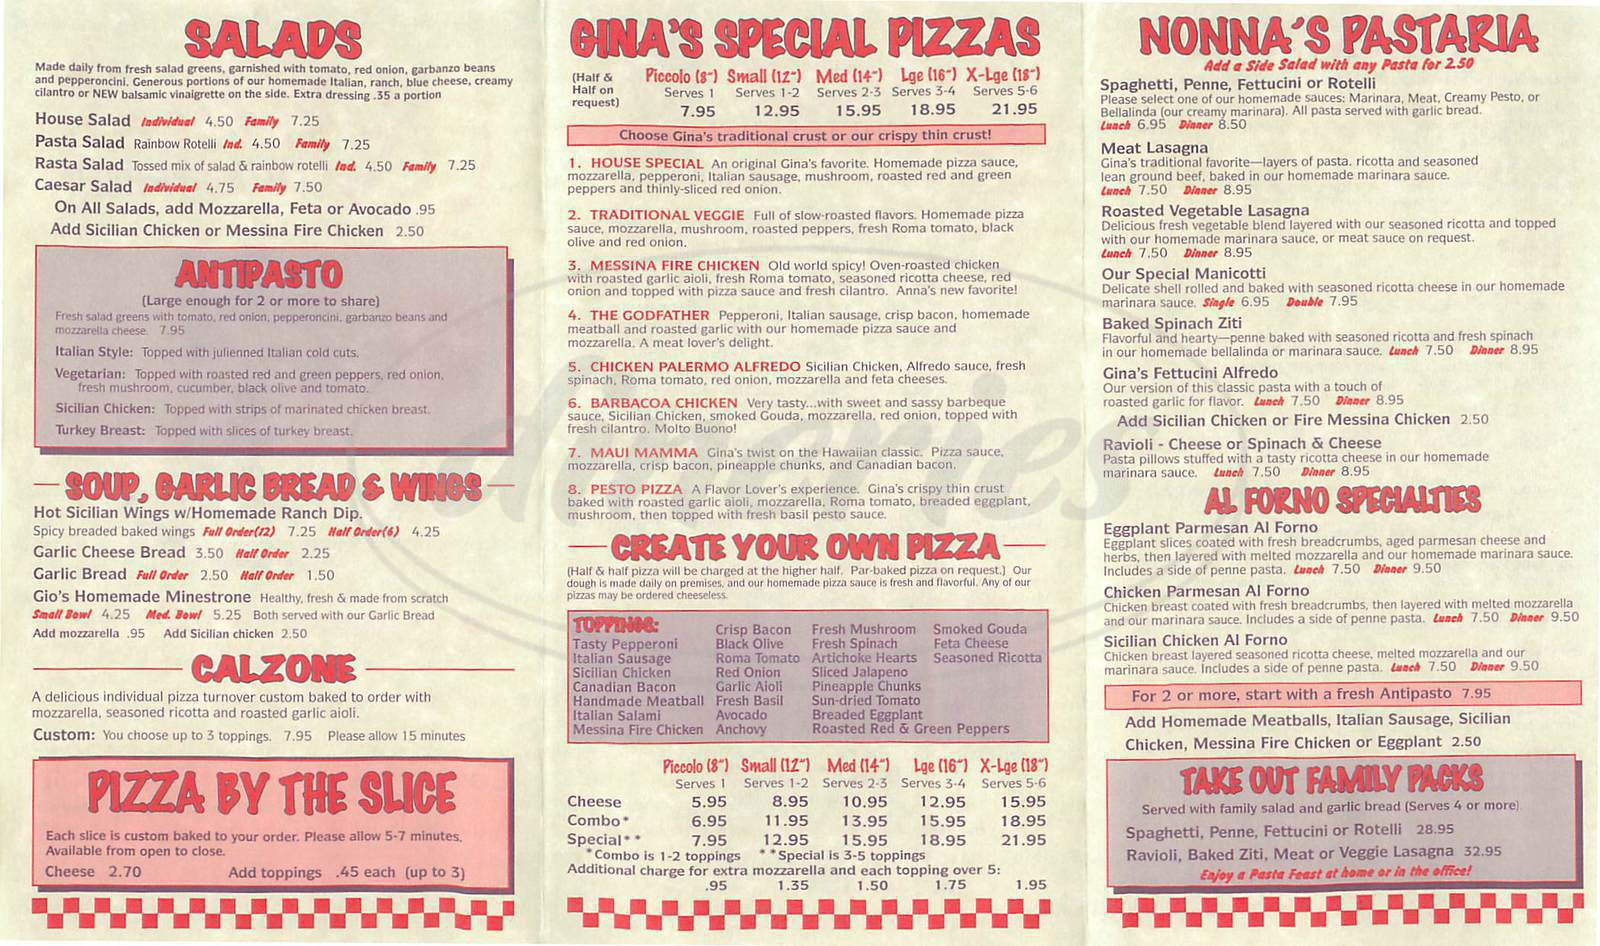 menu for Gina's Pizza & Pastaria